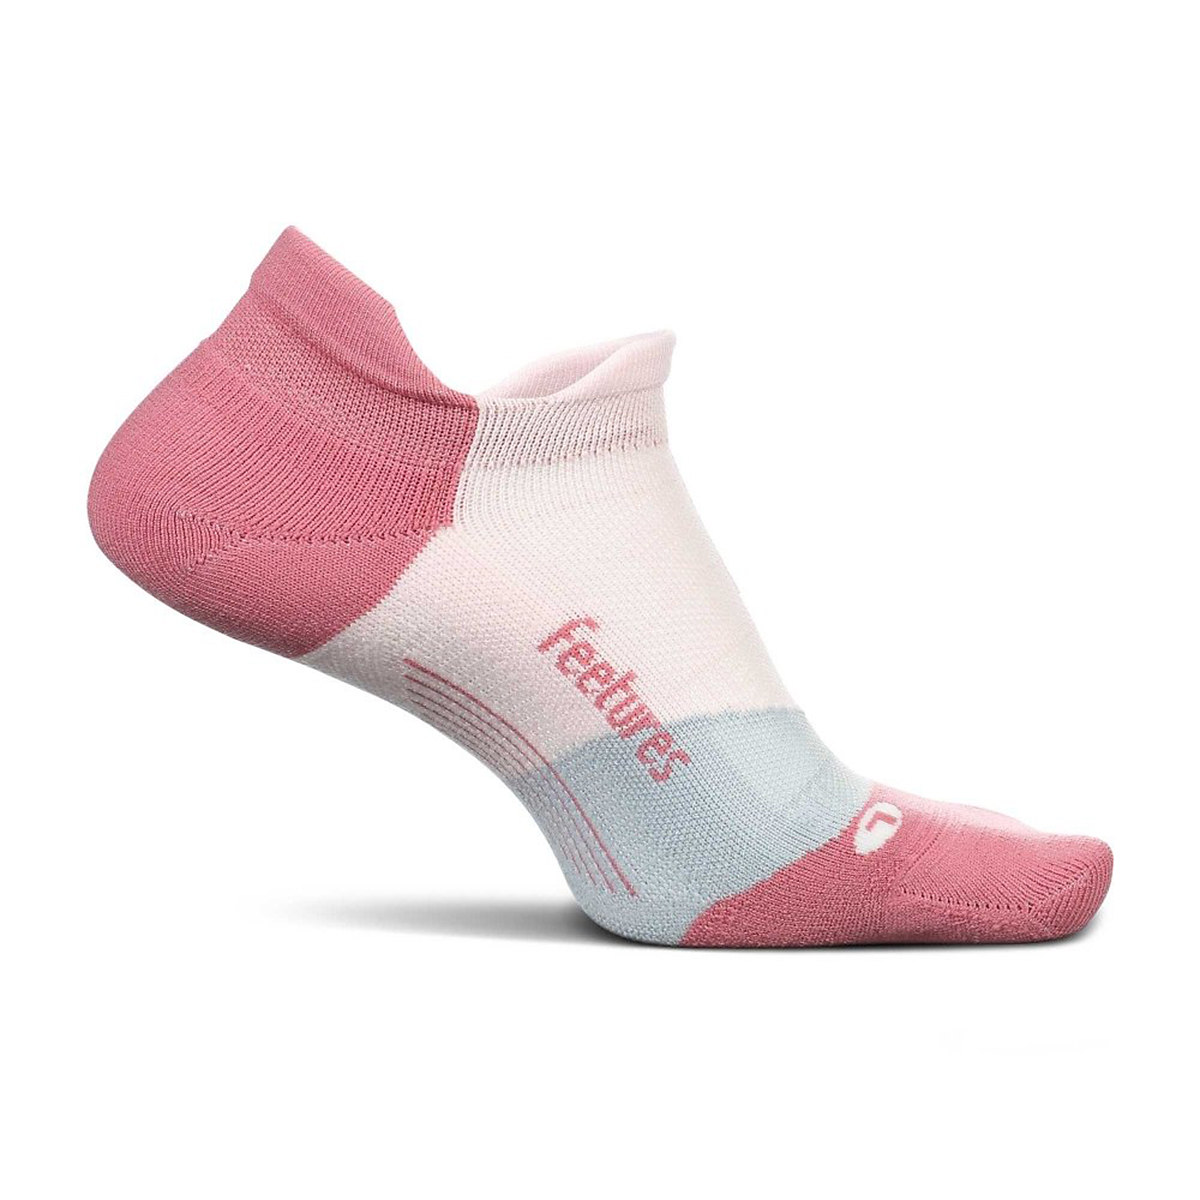 Feetures Elite Ultra Light No Show Sock - Color: Polychrome Pink - Size: S, Polychrome Pink, large, image 1